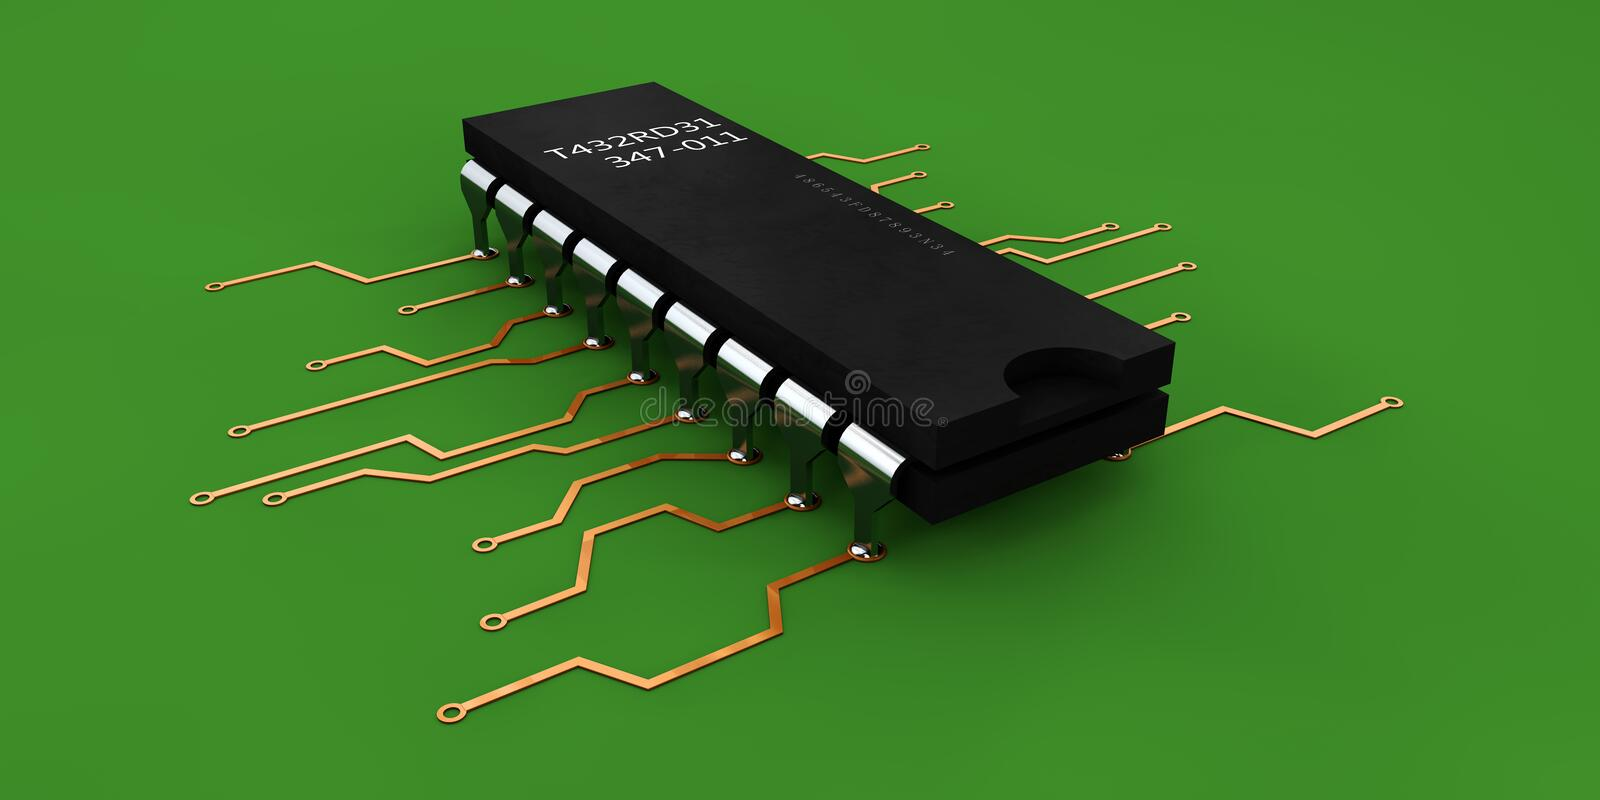 Illustration of computer microchip isolated green background. 3d Illustration of computer microchip isolated green background royalty free illustration